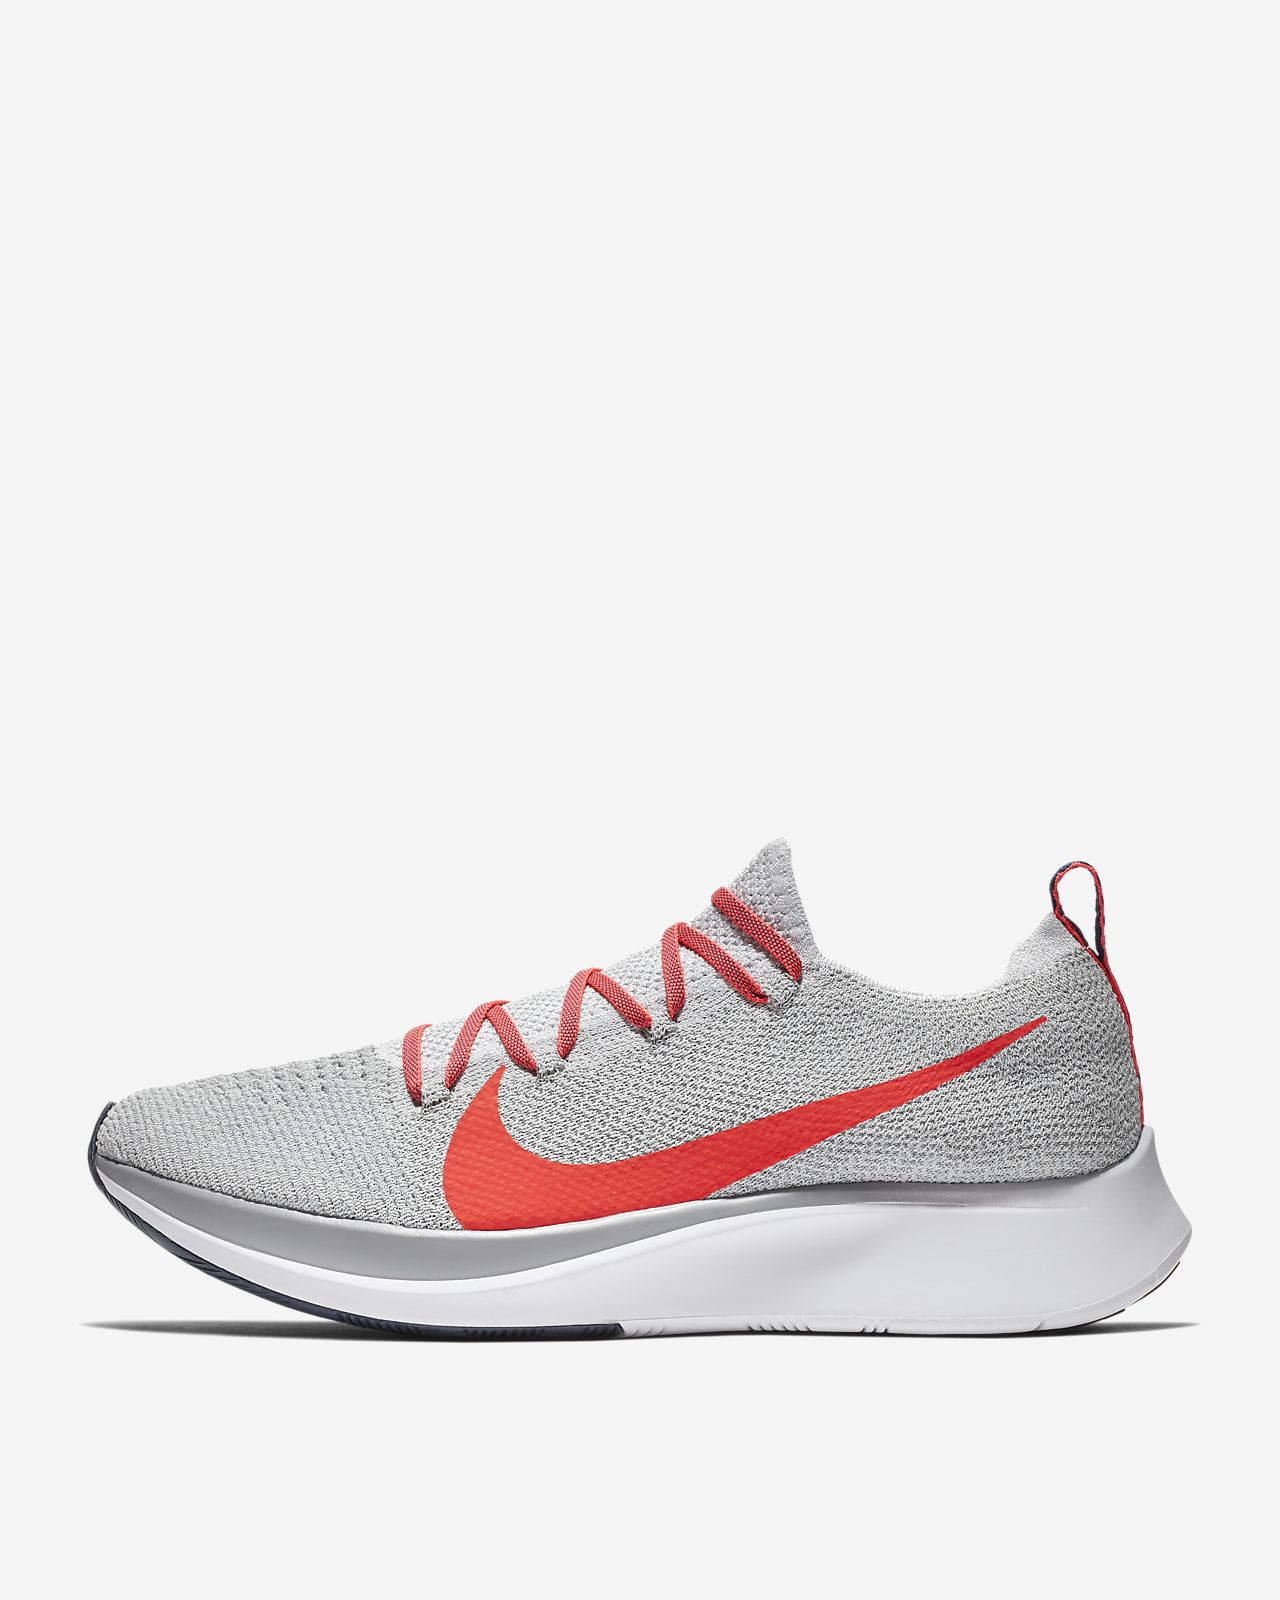 dc06871f139e2 Nike Zoom Fly Flyknit Men s Running Shoe. Nike.com